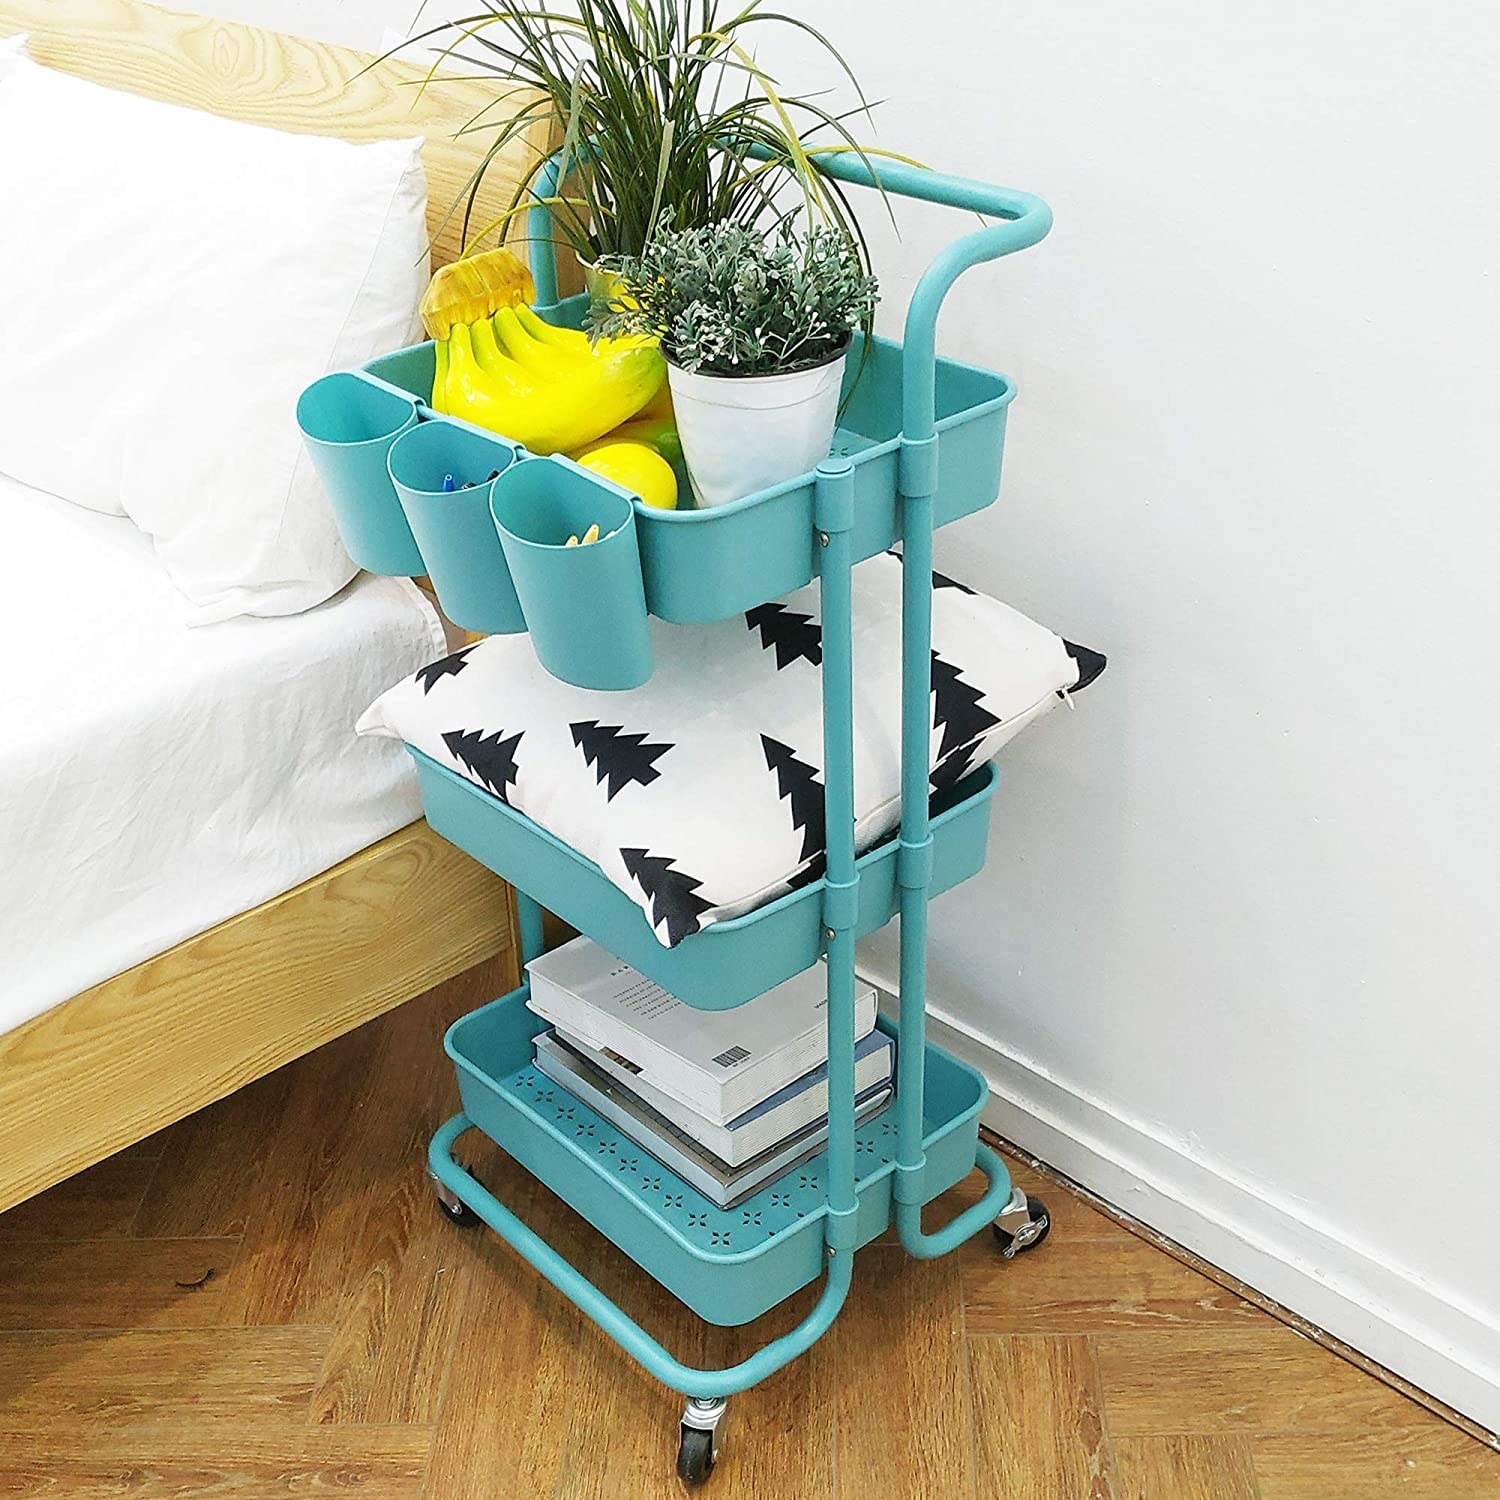 The cart beside a bed